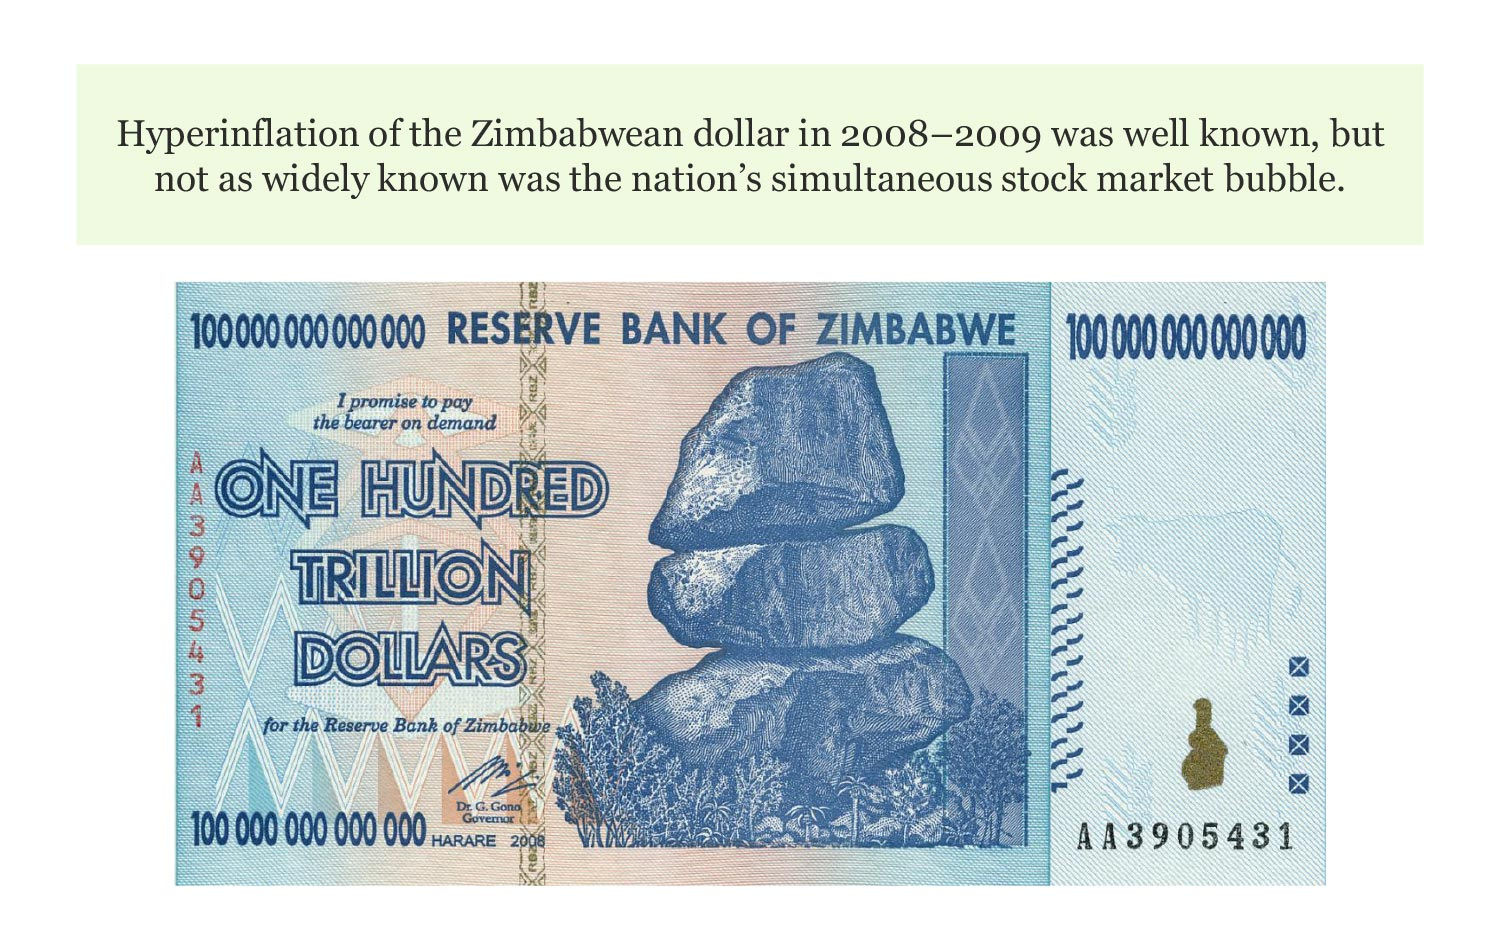 668-yes-its-a-bubble-figure-zimbabwean-dollar